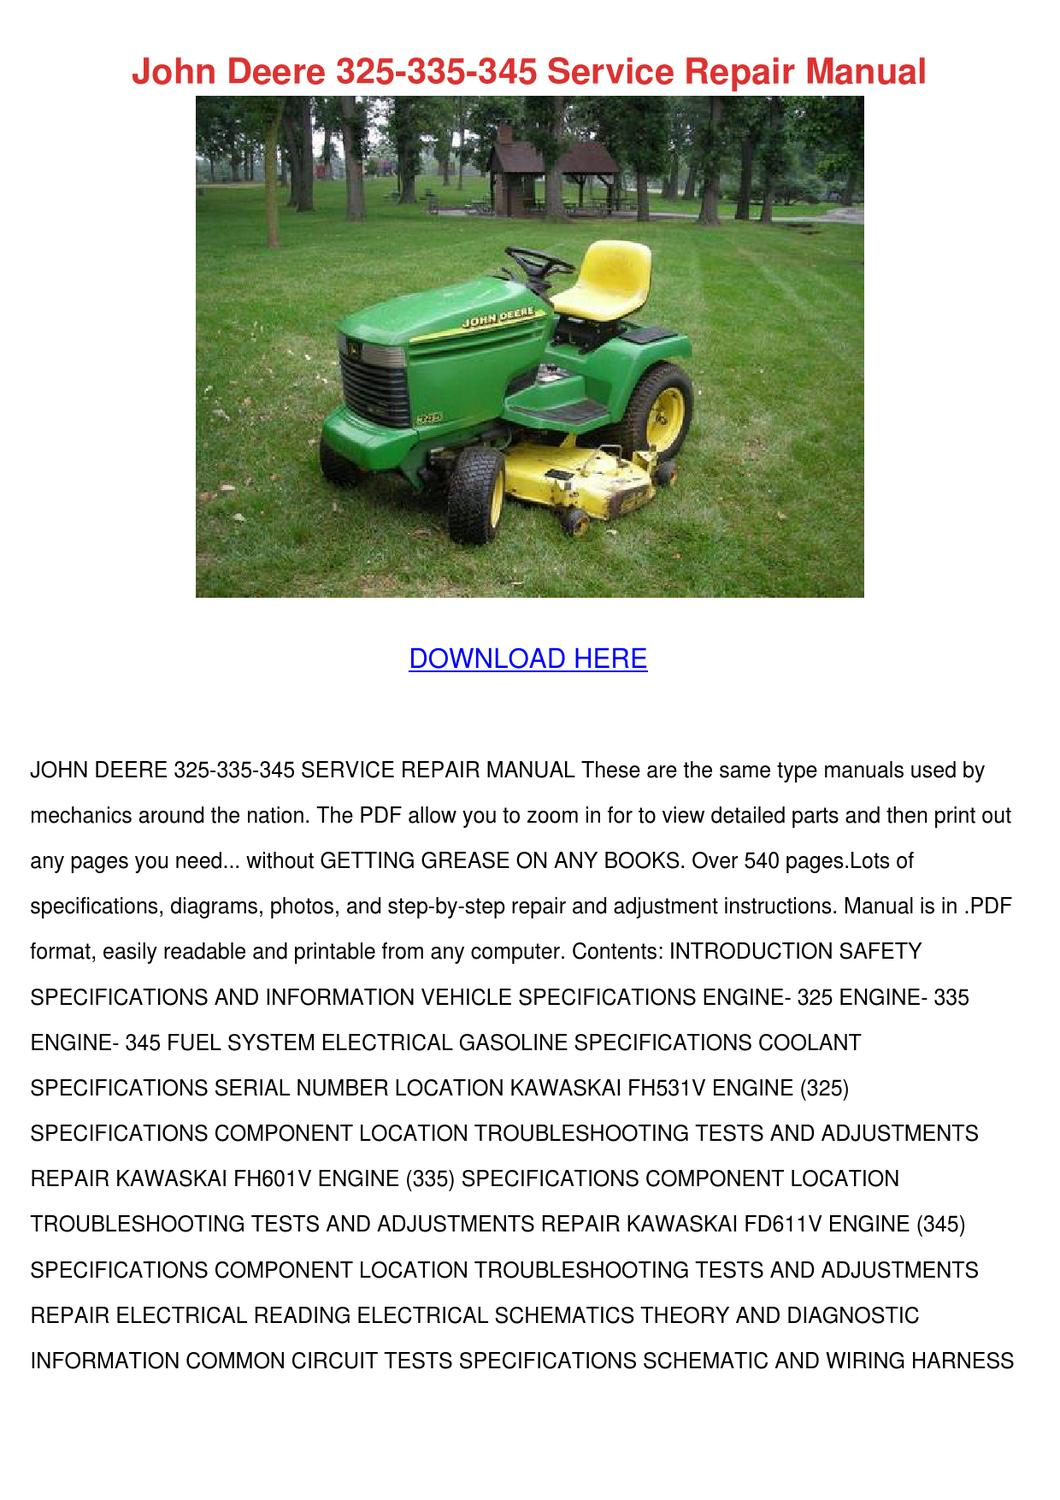 John Deere 325 335 345 Service Repair Manual By Kari Mabey Issuu 5410 Wiring Diagram